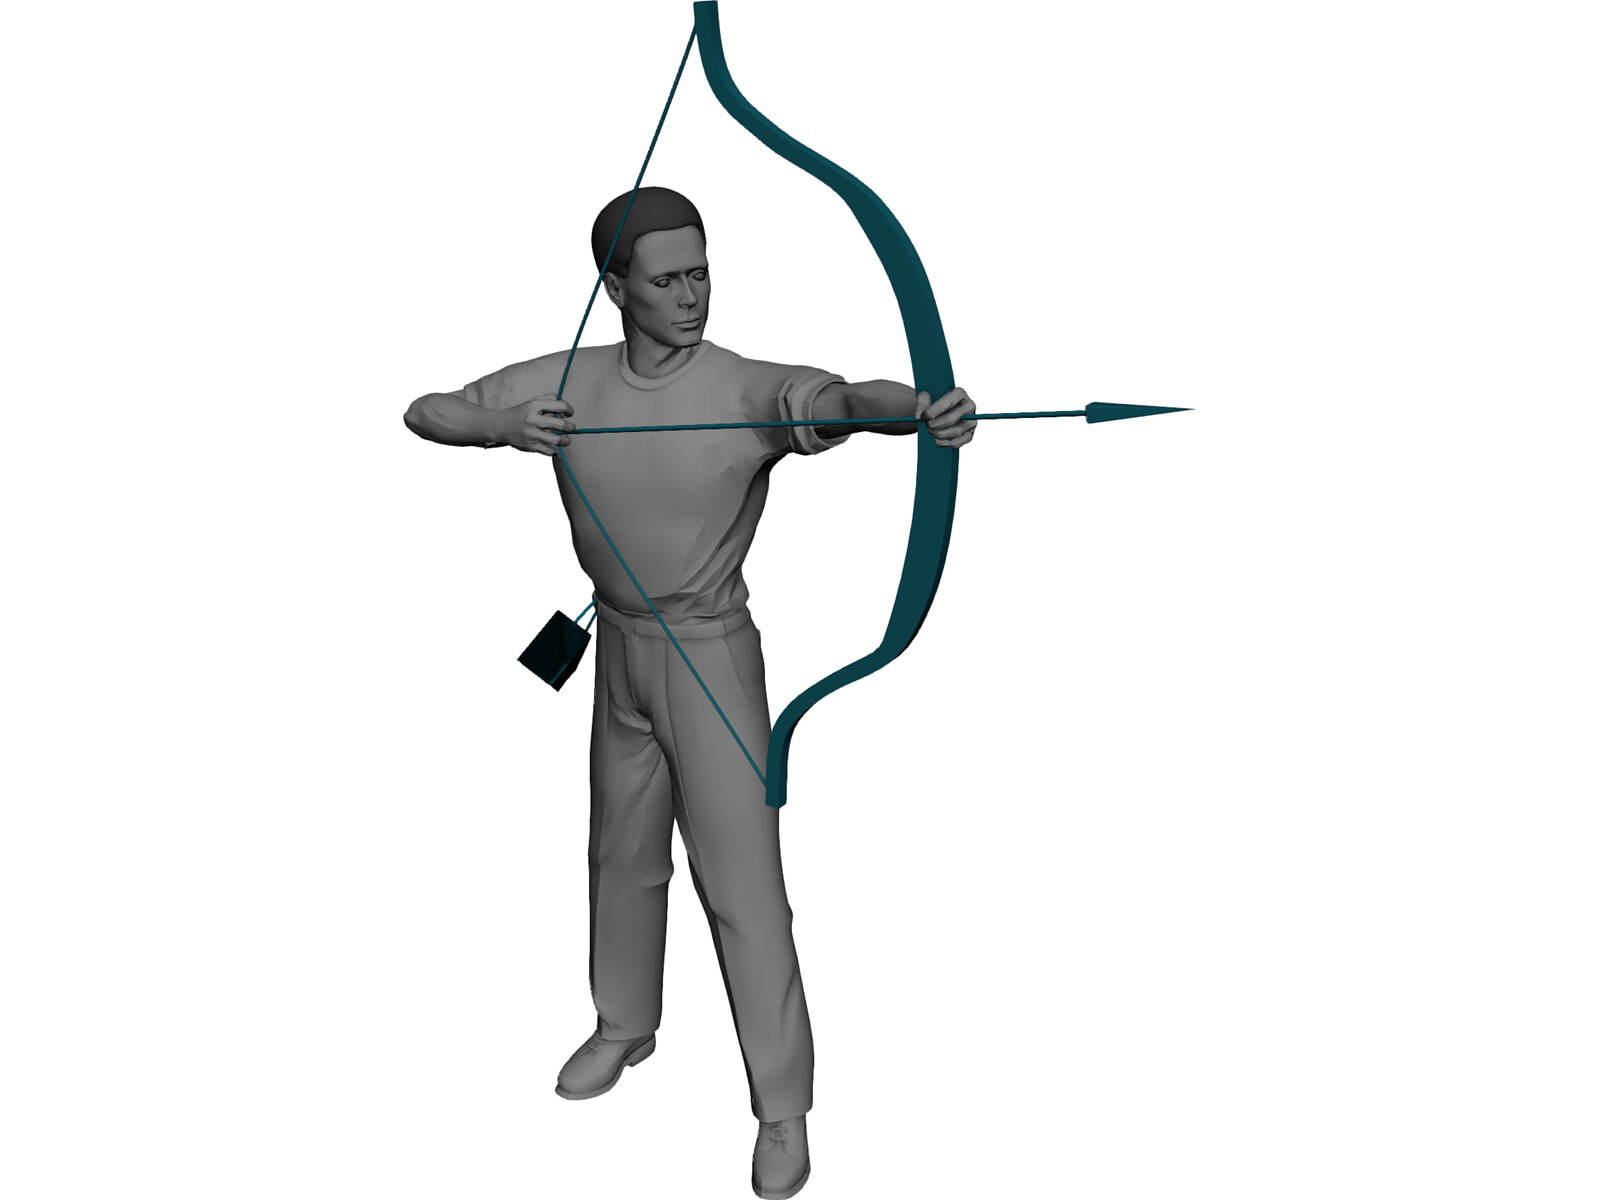 Man with Bow and Arrow 3D Model - 3D CAD Browser